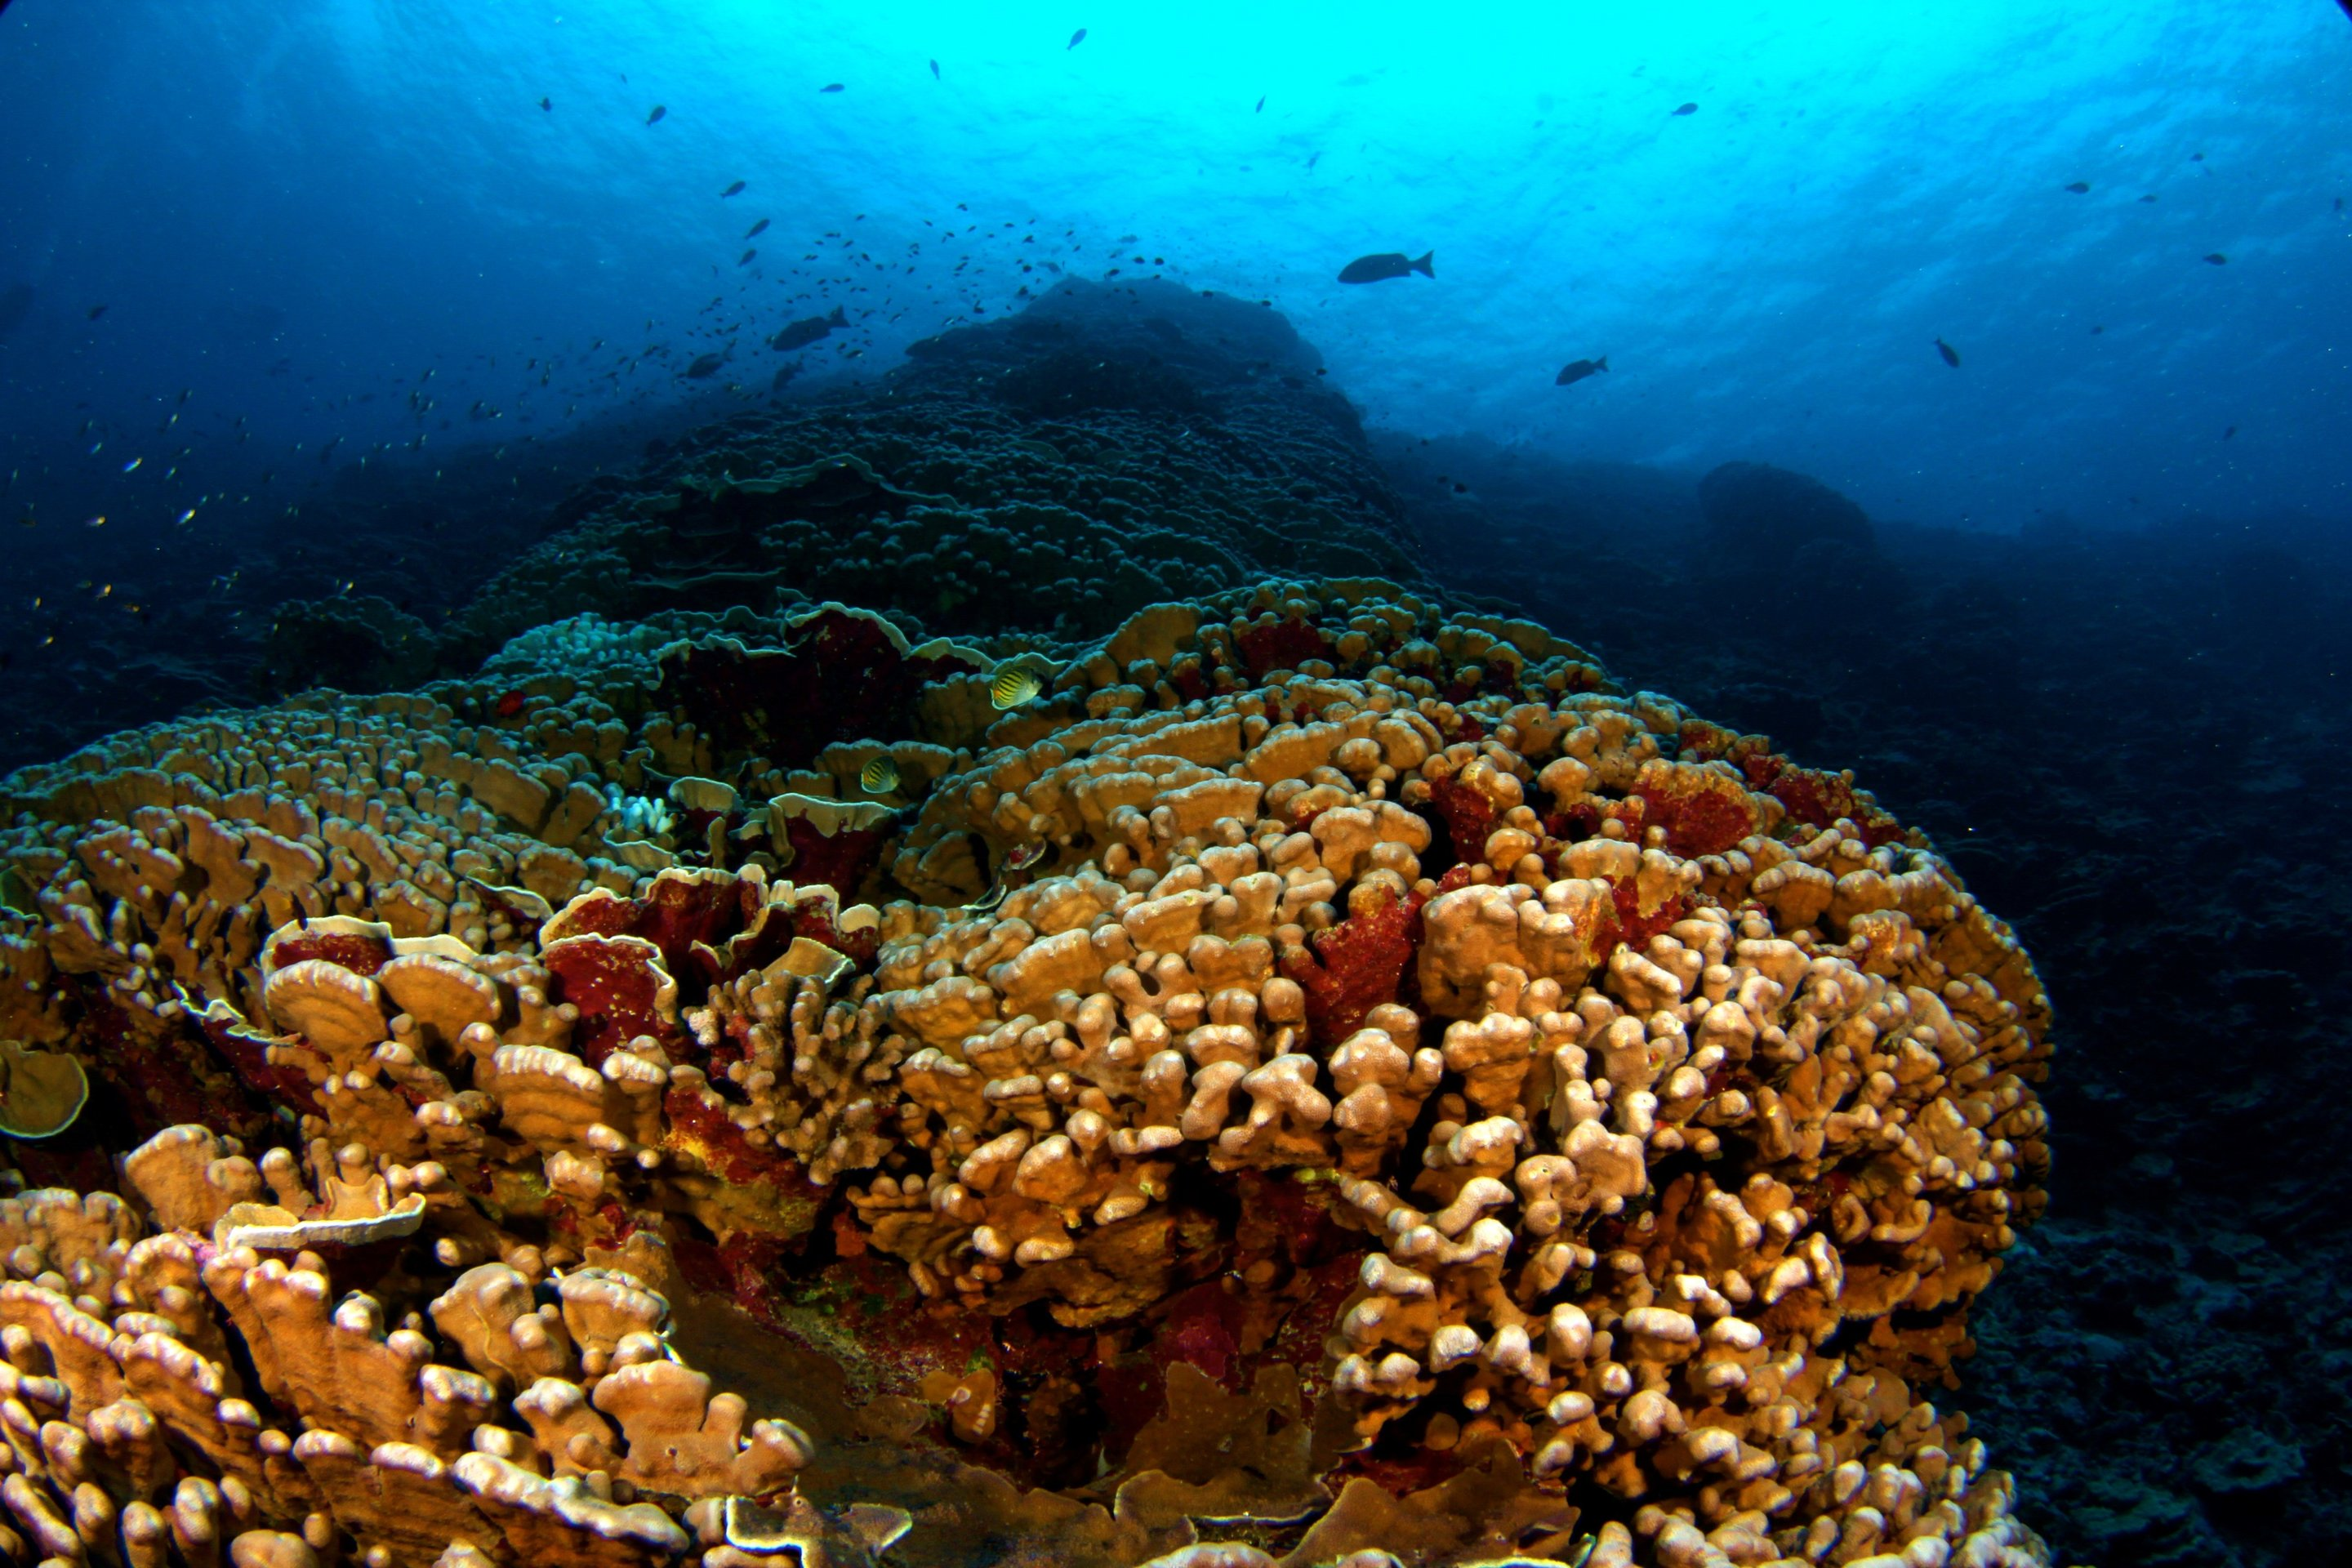 Carbon dating coral reefs